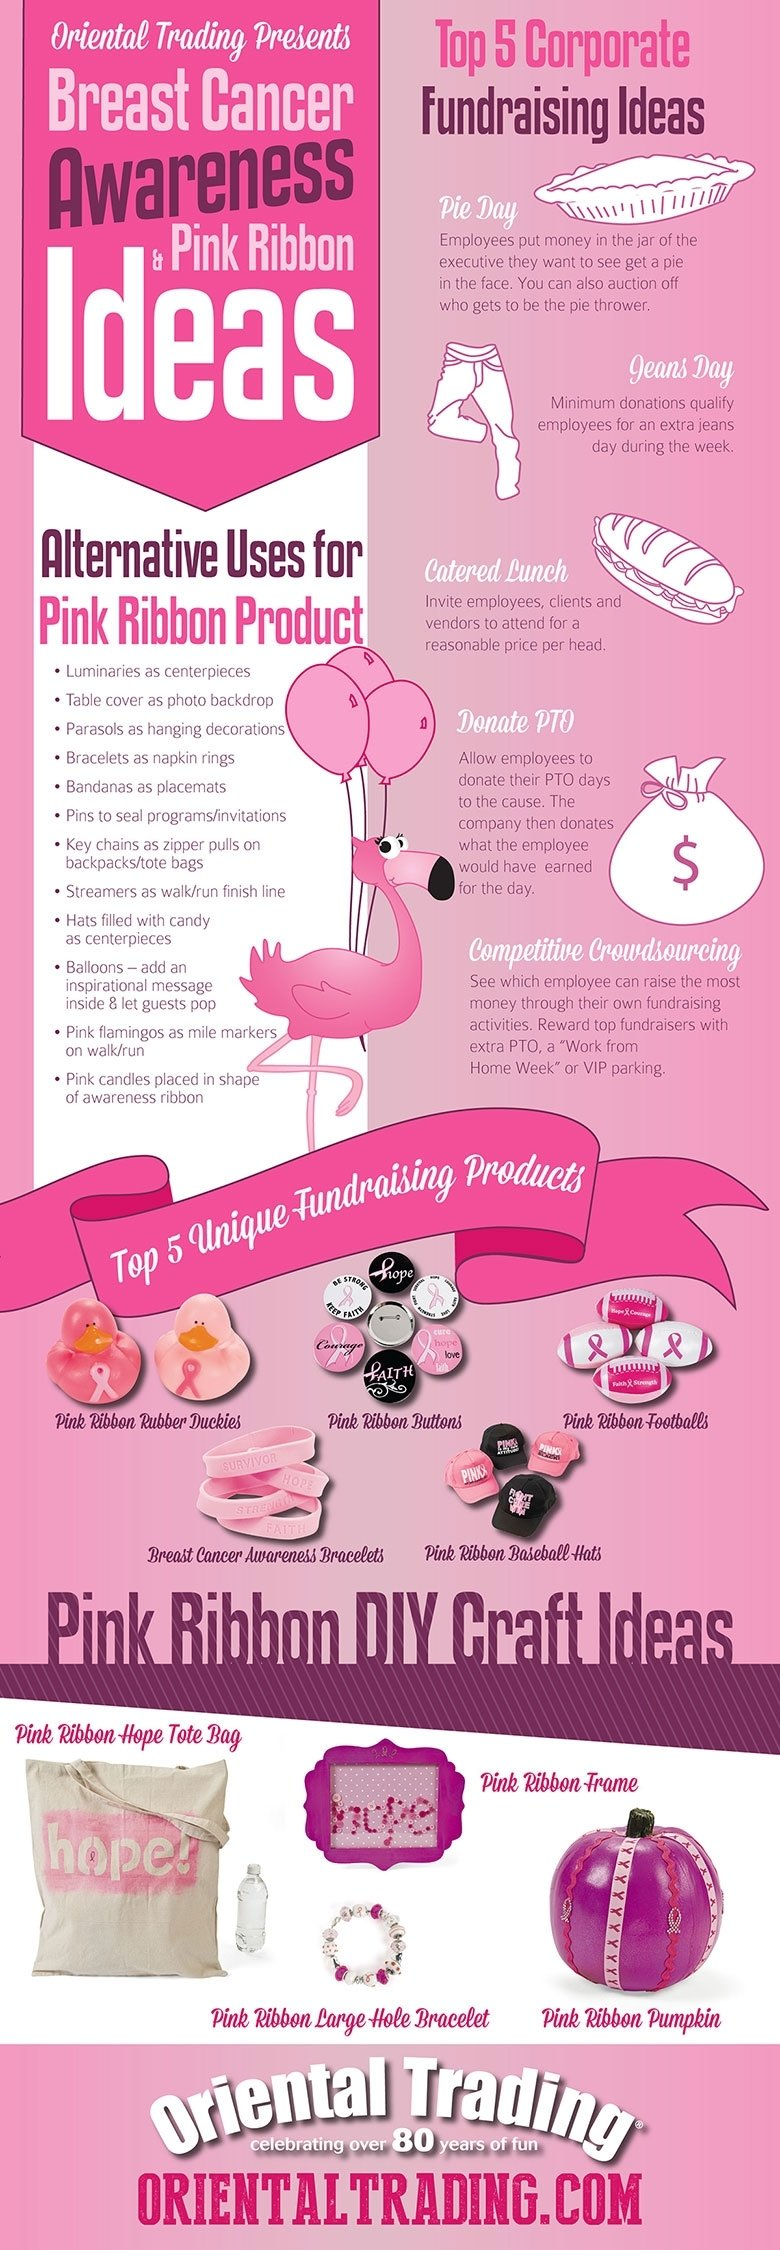 10 Stunning Breast Cancer Awareness Event Ideas breast cancer awareness pink ribbon ideas infographic 2020